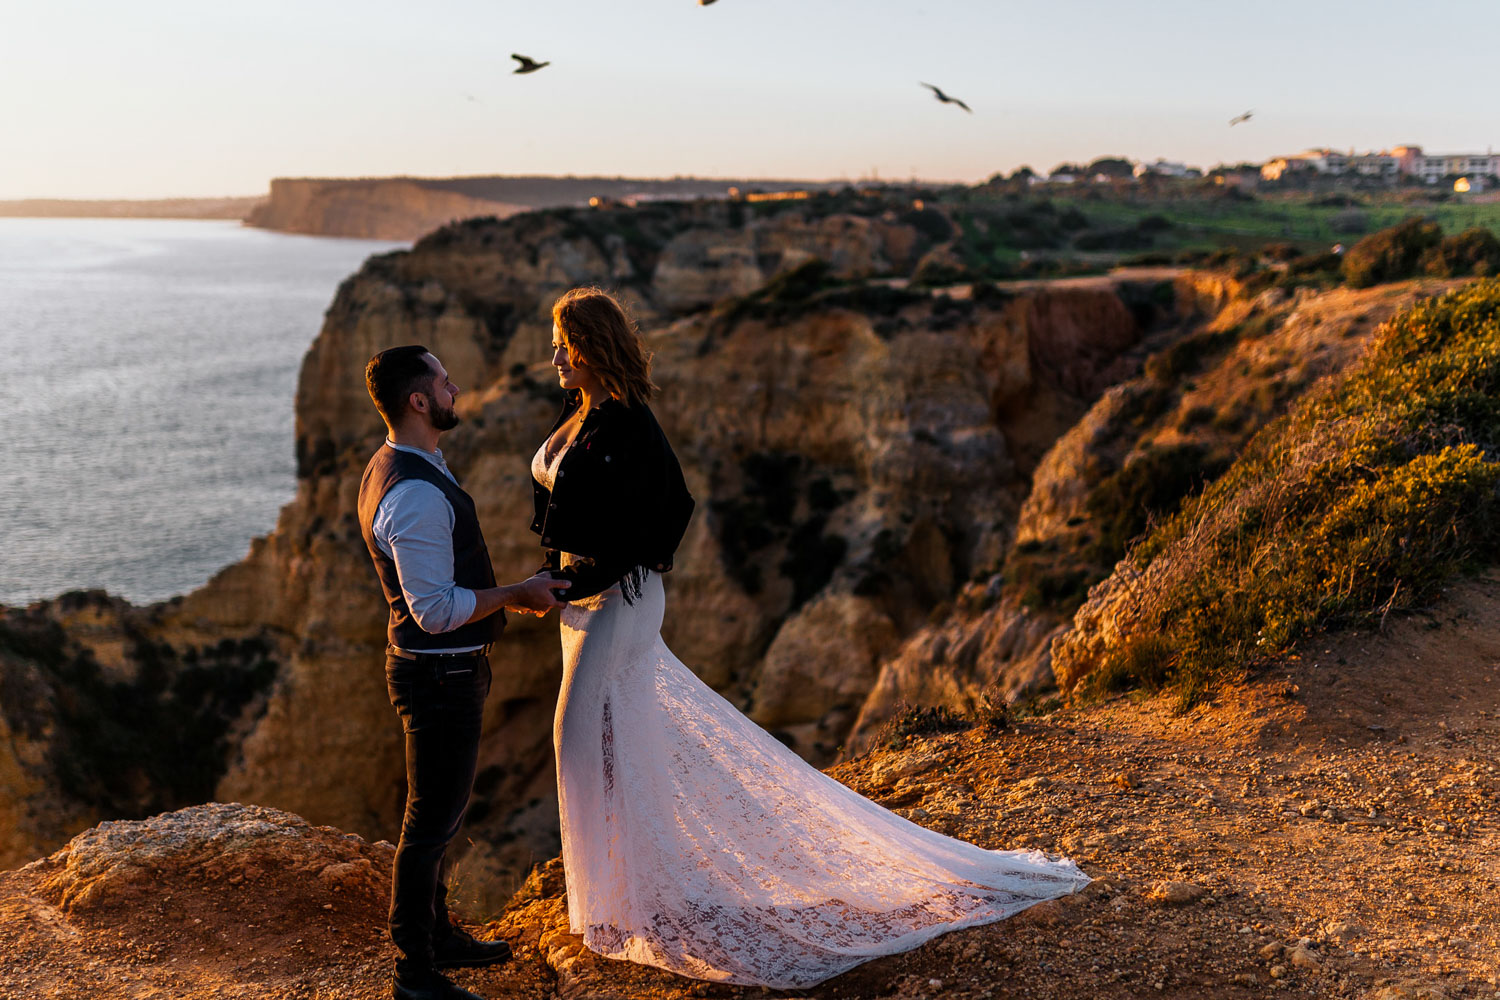 Couple on cliffs on their wedding day at sunset, Algarve